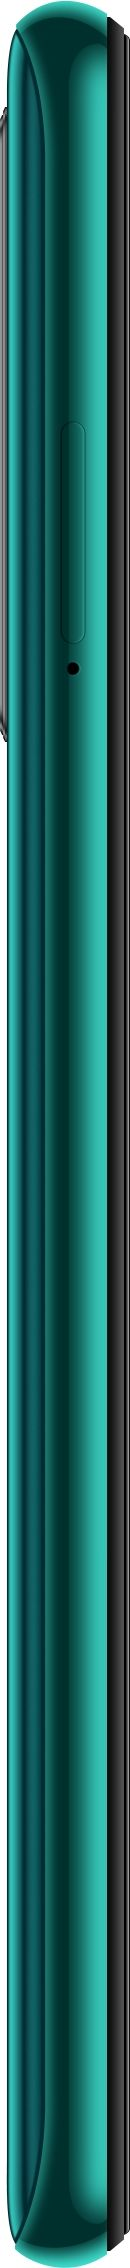 "Смартфон Xiaomi Redmi Note 8 Pro - 6.53"", 64GB, forest green - 5"